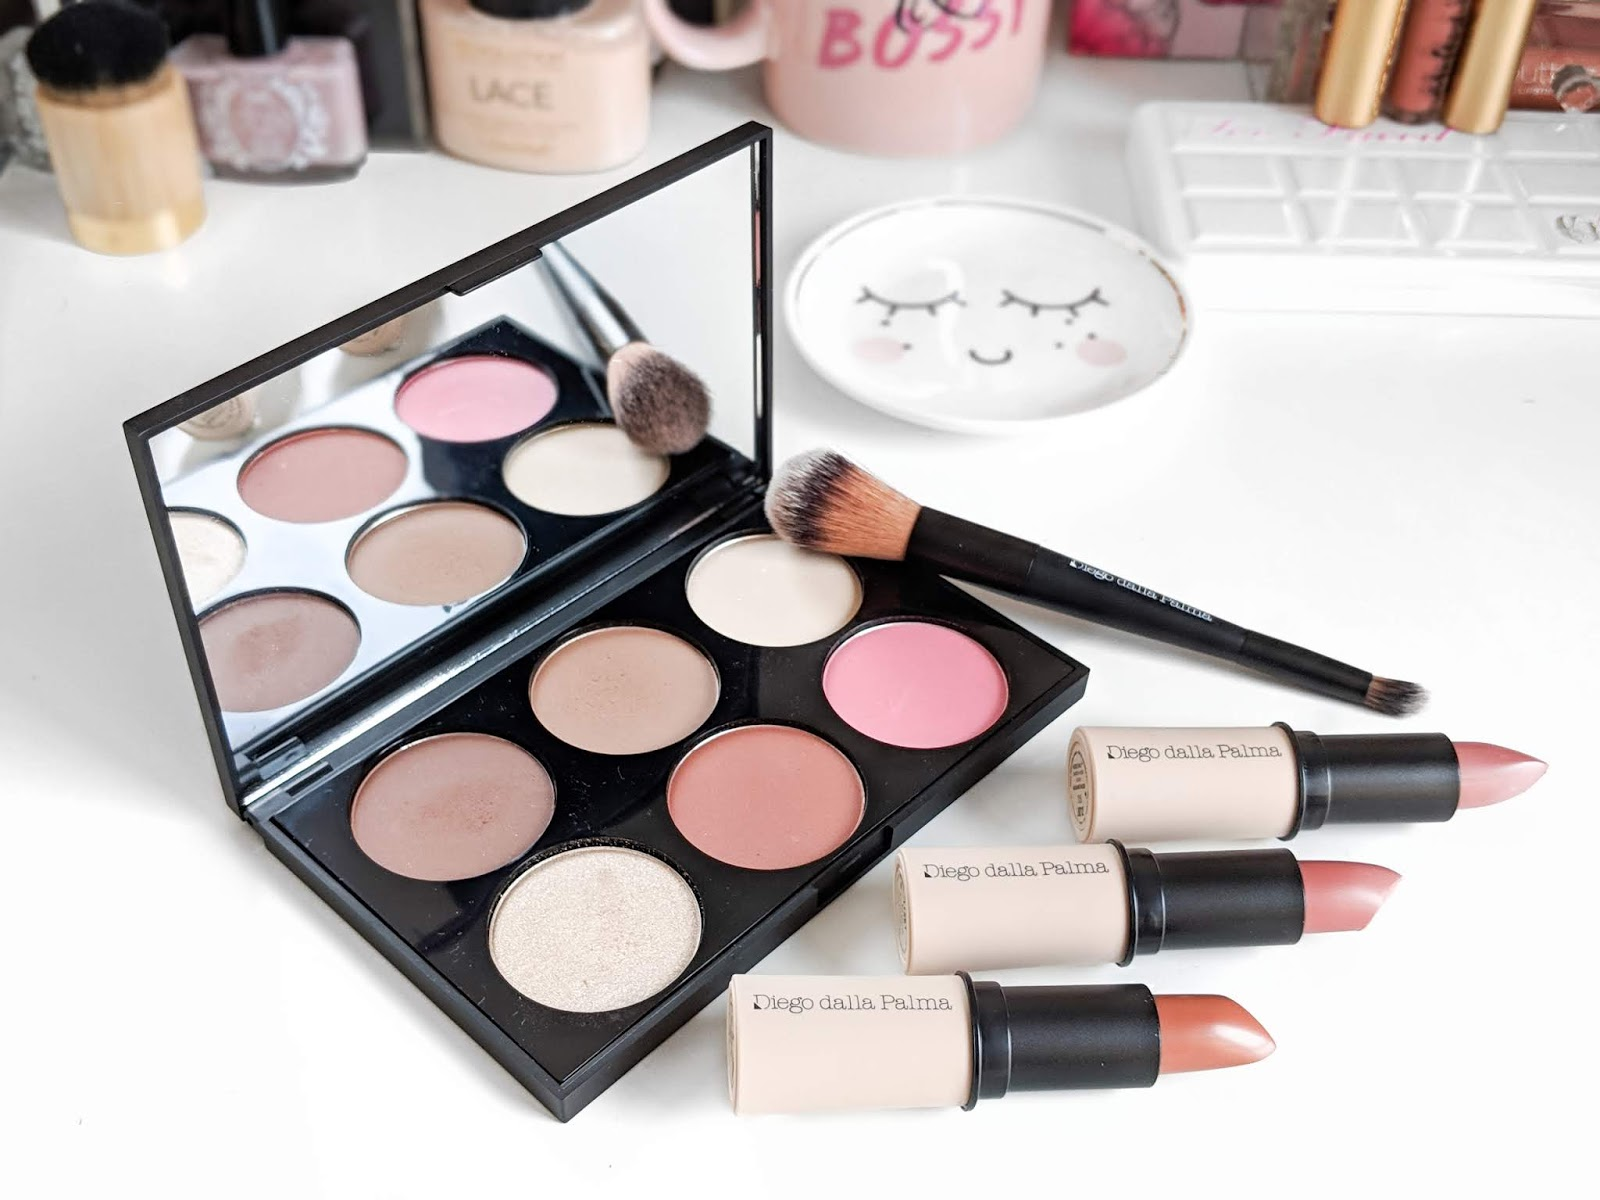 Image showing the Diego Dalla Palma Full Face Palette and three Nudissimo Lipsticks